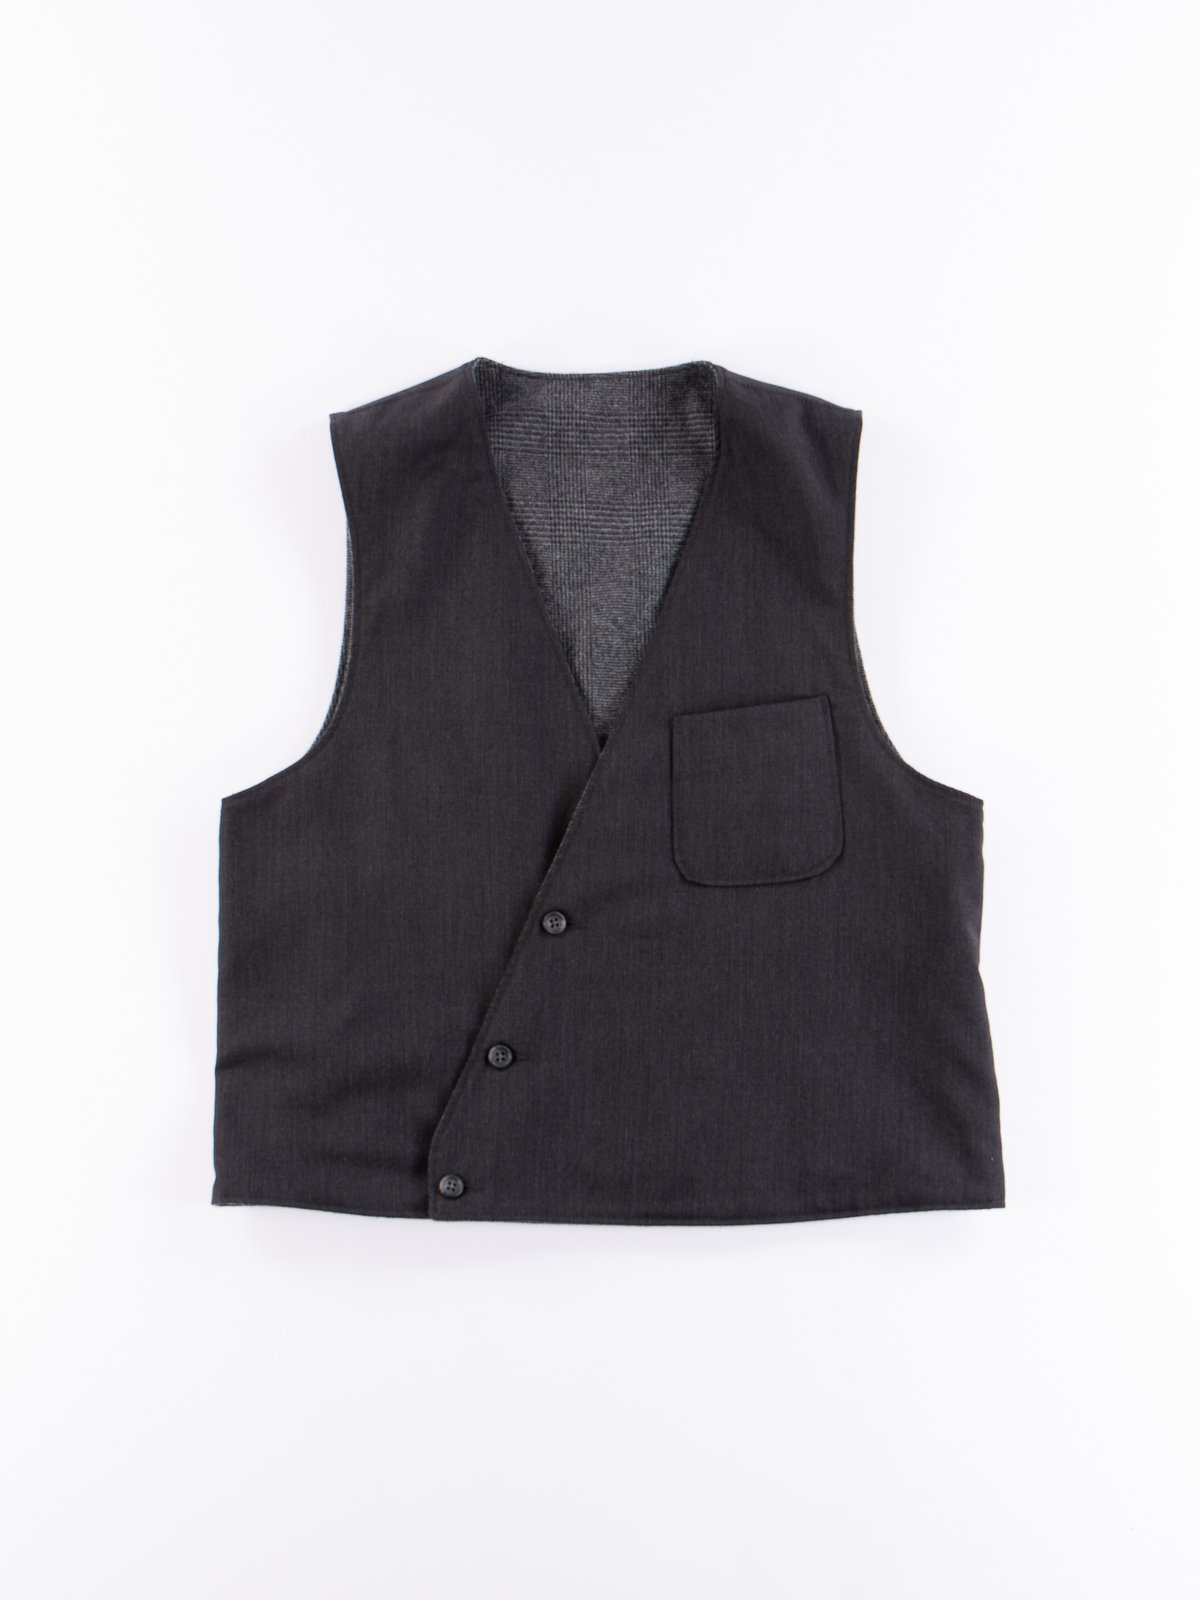 Charcoal Worsted Wool Gabardine Reversible Vest - Image 1